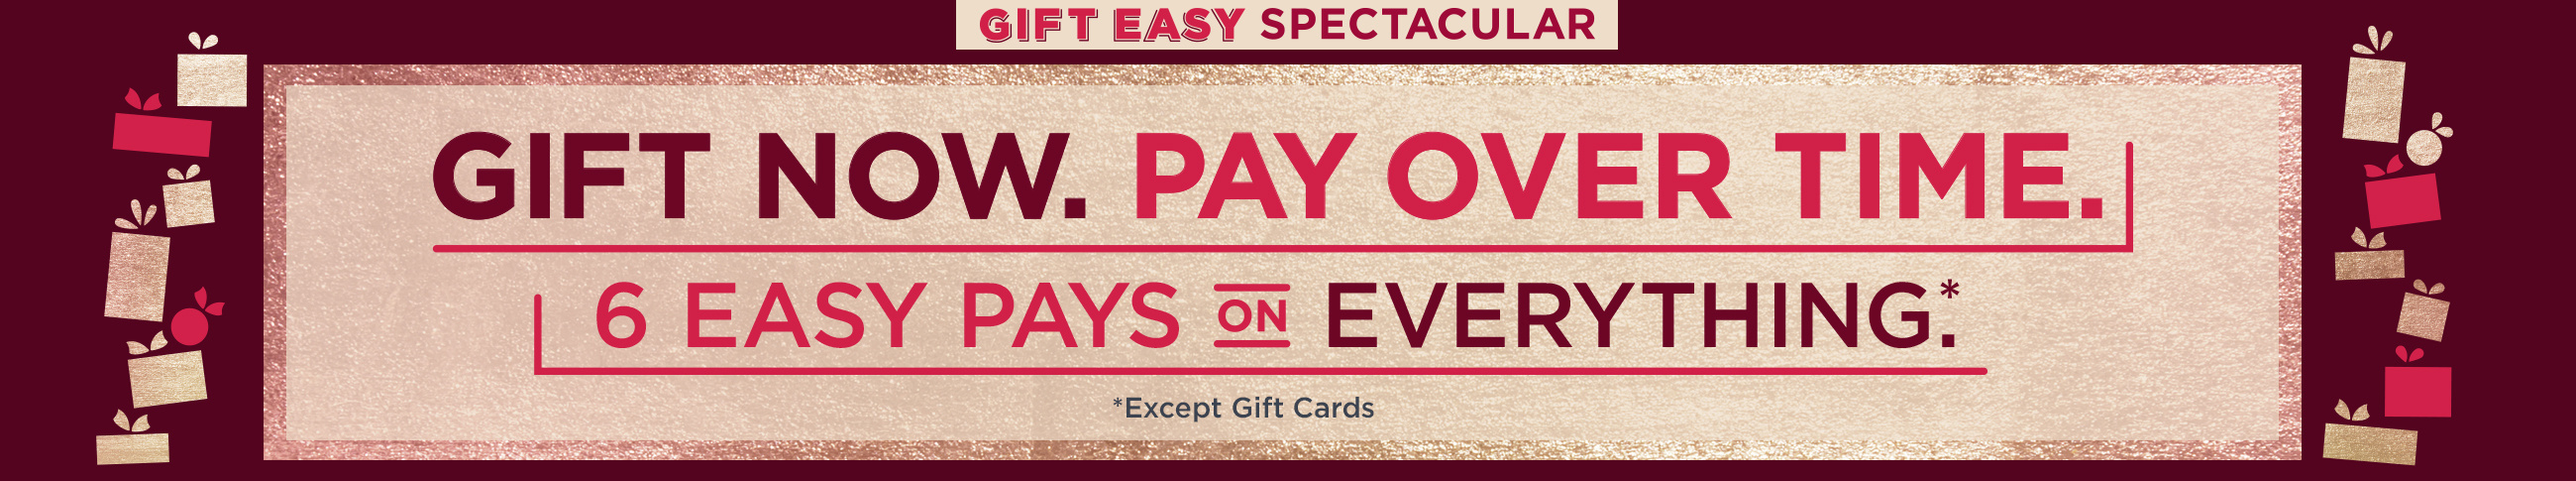 Gift Easy Spectacular — Gift Now. Pay Over Time. — 6 Easy Pays on Everything (Except Gift Cards)